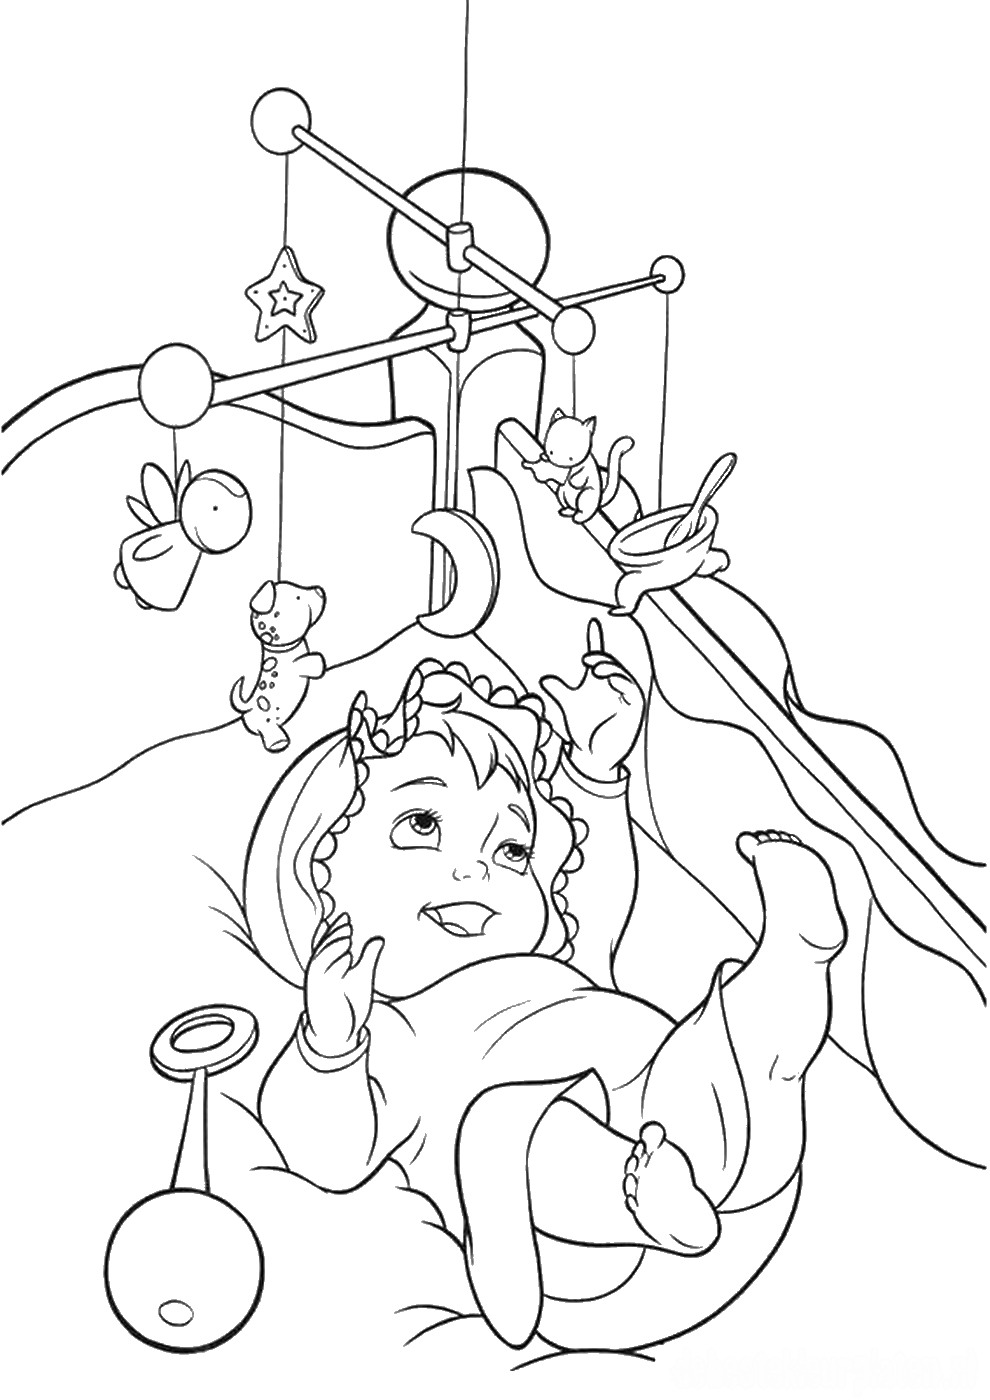 Terence Disney Coloring Pages Coloring Pages